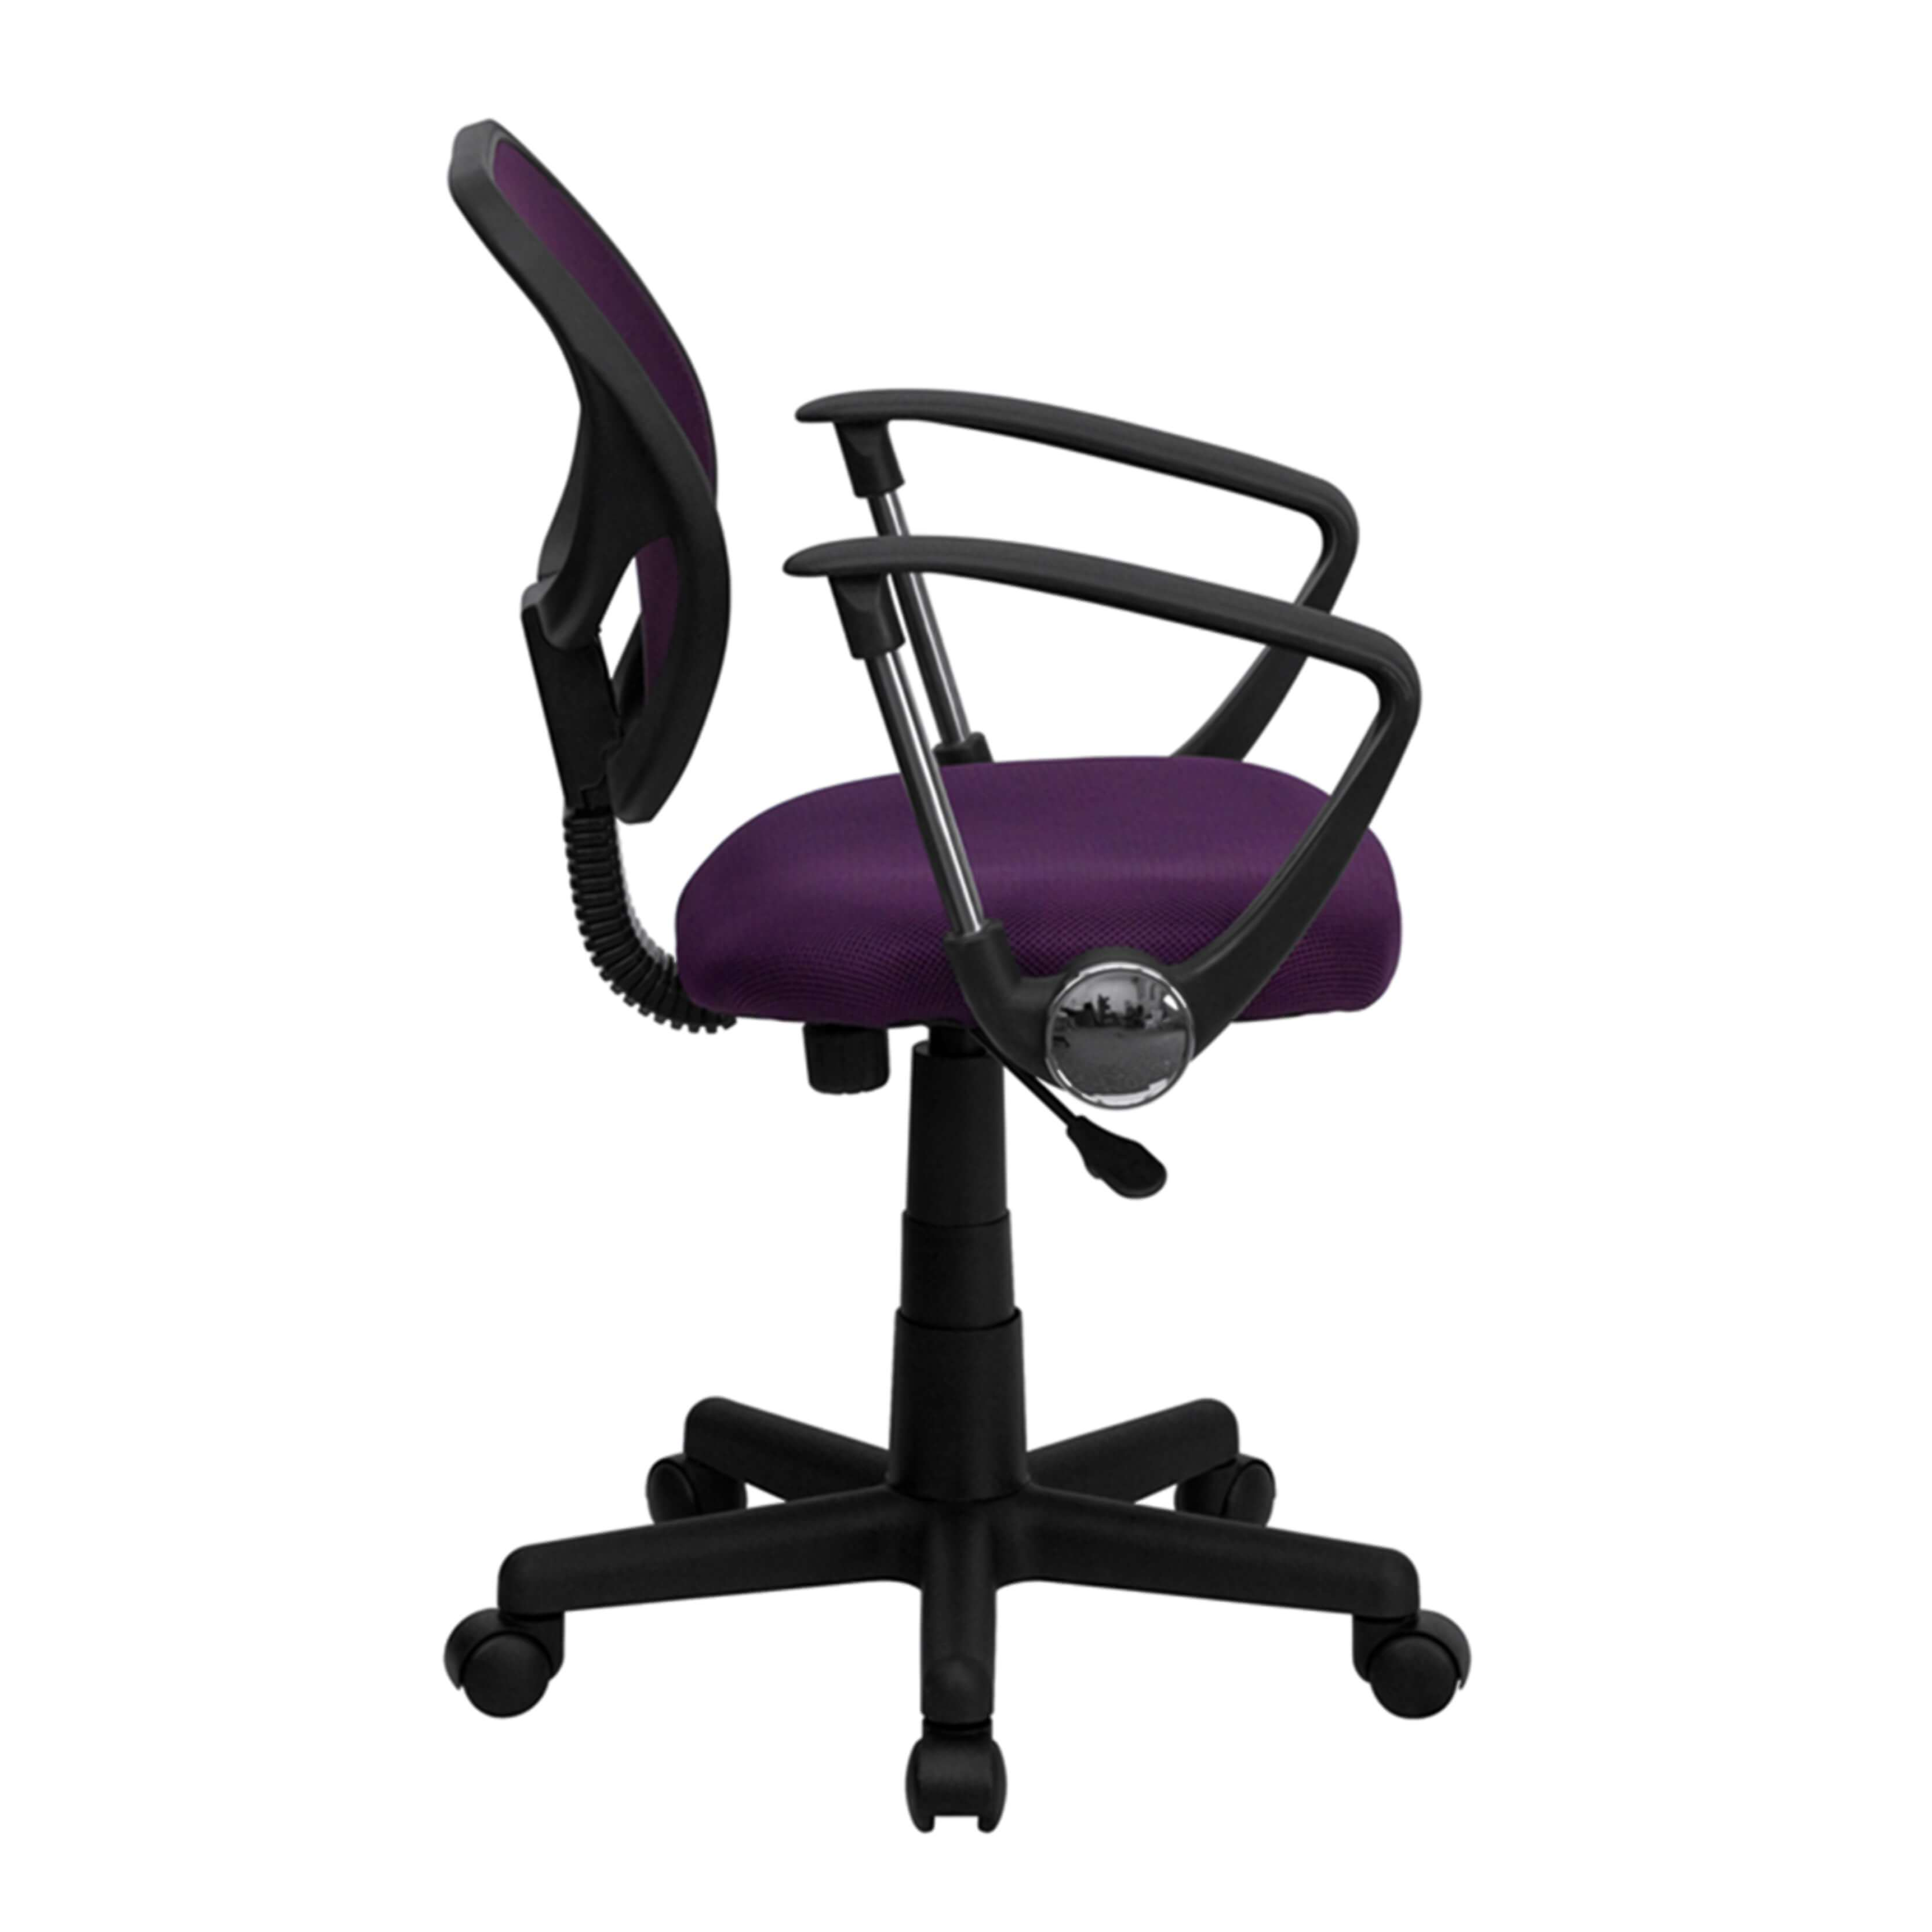 Petite office chairs side view